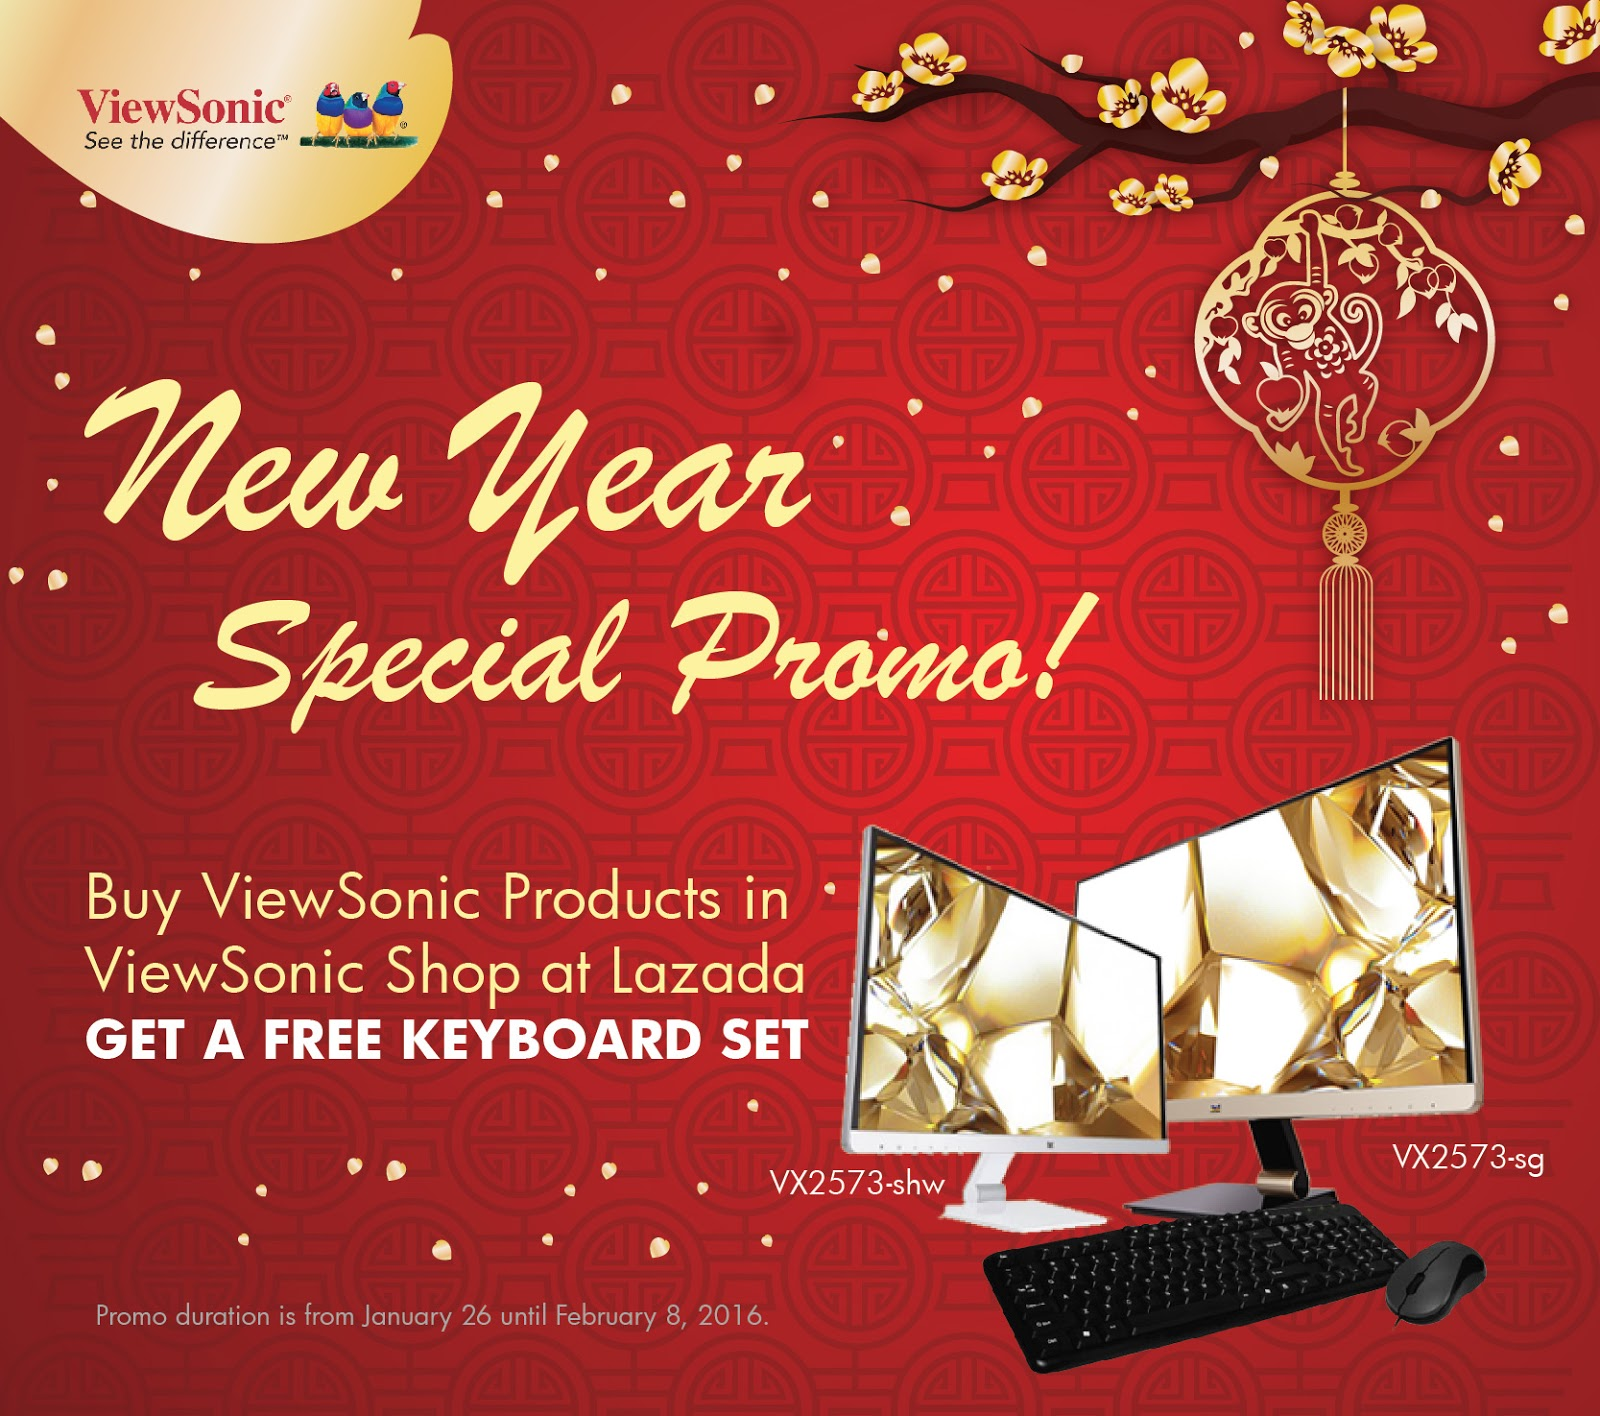 ViewSonic's Limited-time Chinese New Year Promotion